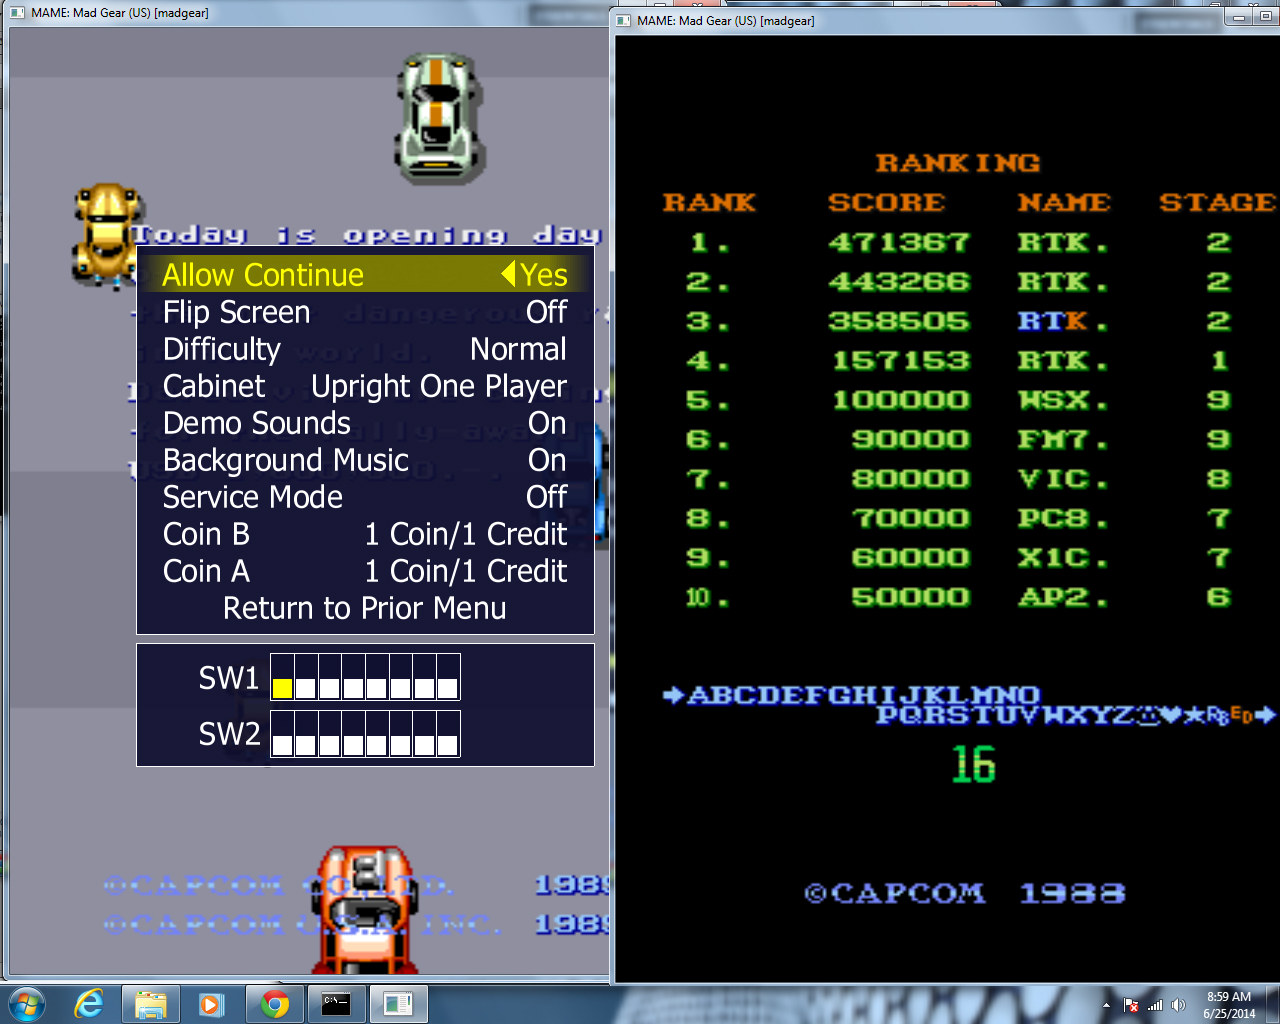 rtkiii: Mad Gear [madgear] (Arcade Emulated / M.A.M.E.) 471,367 points on 2014-06-25 08:04:39